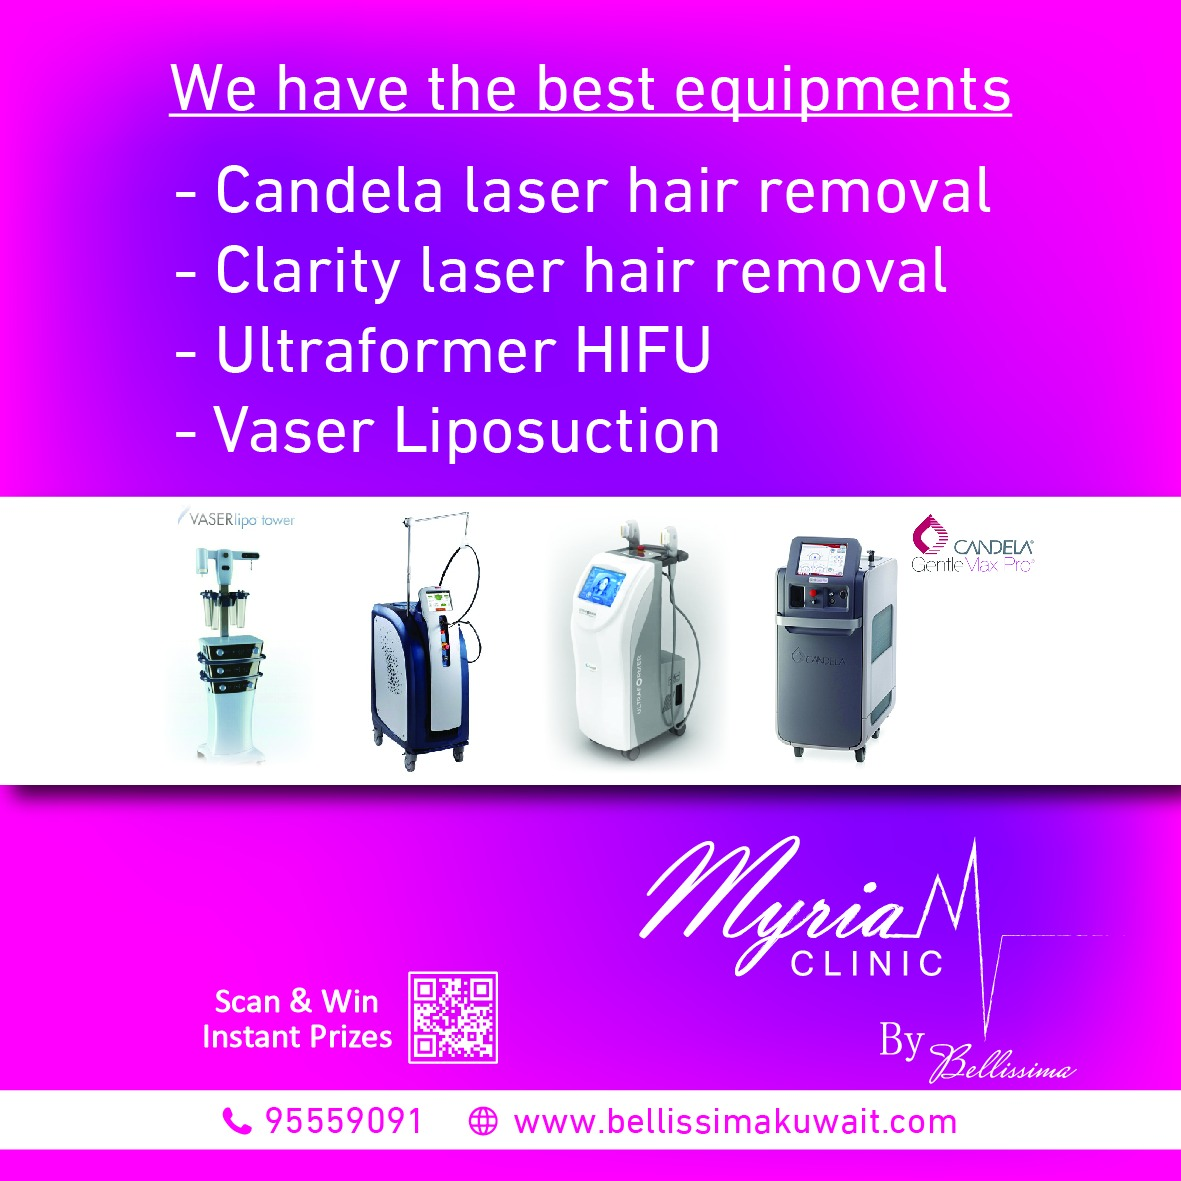 THE CLARITY - Laser Hair Removal in Kuwait. ULTRA FORMER HIFU Kuwait - High Intensity Focused Ultrasound. VASER Liposuction in Kuwait.